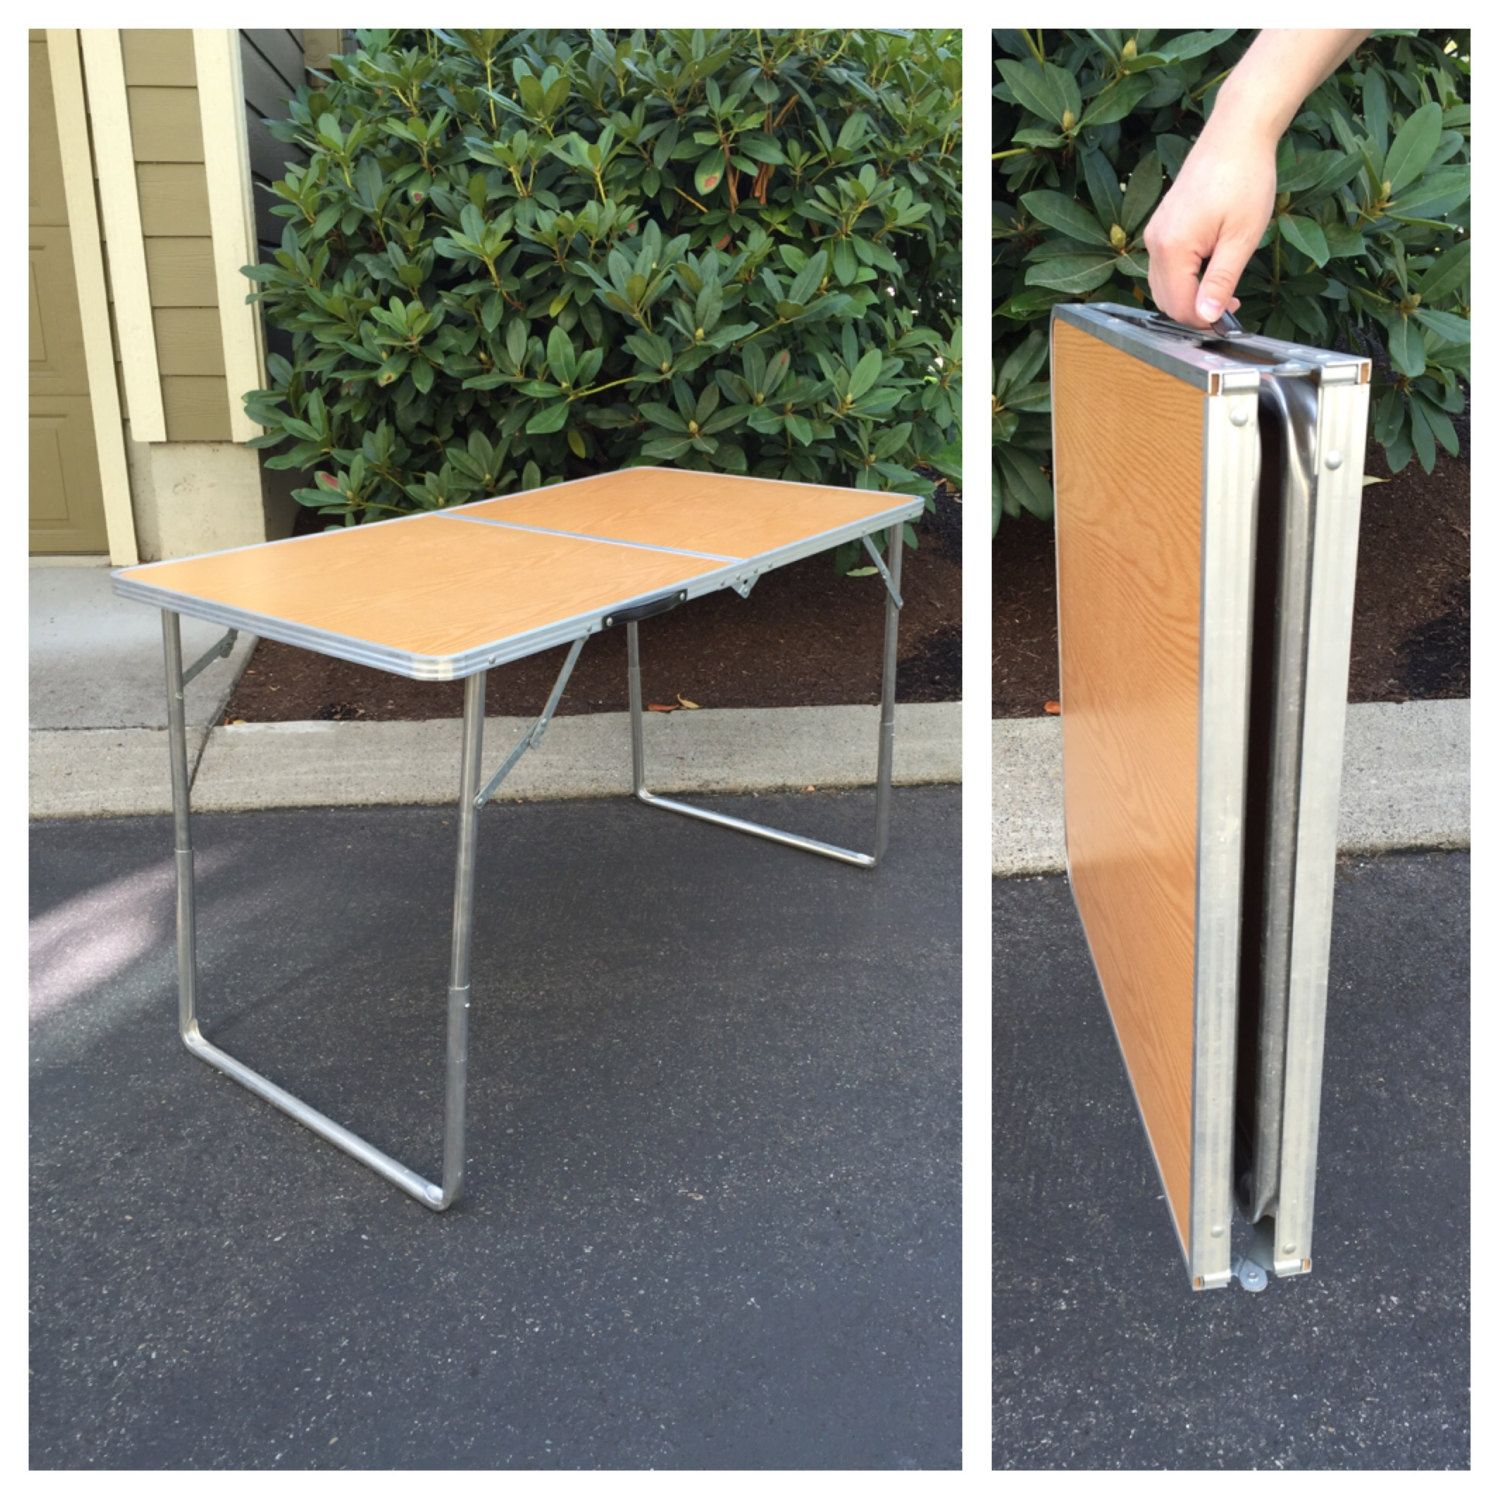 Vintage Metal Folding Table Portable Table Folding Travel Table